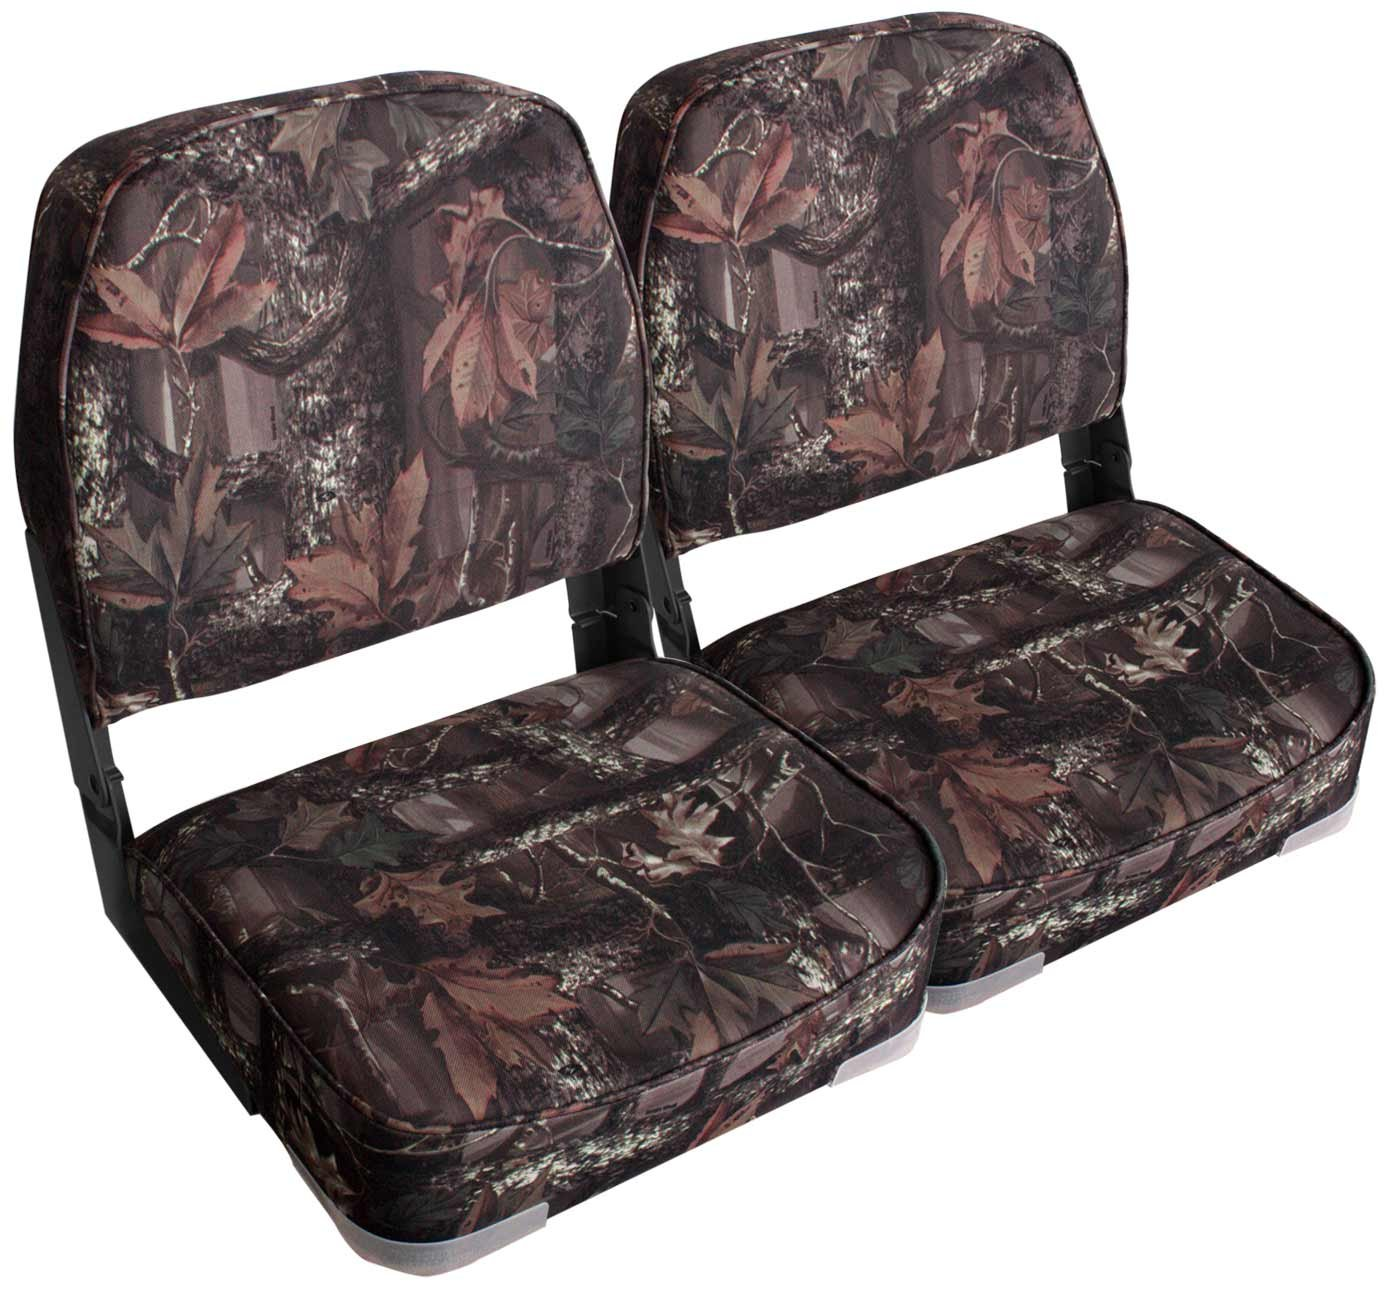 Leader Accessories A Pair of New Low Back Folding Boat Seats(2 Seats) (Camo/Black Hinge) by Leader Accessories